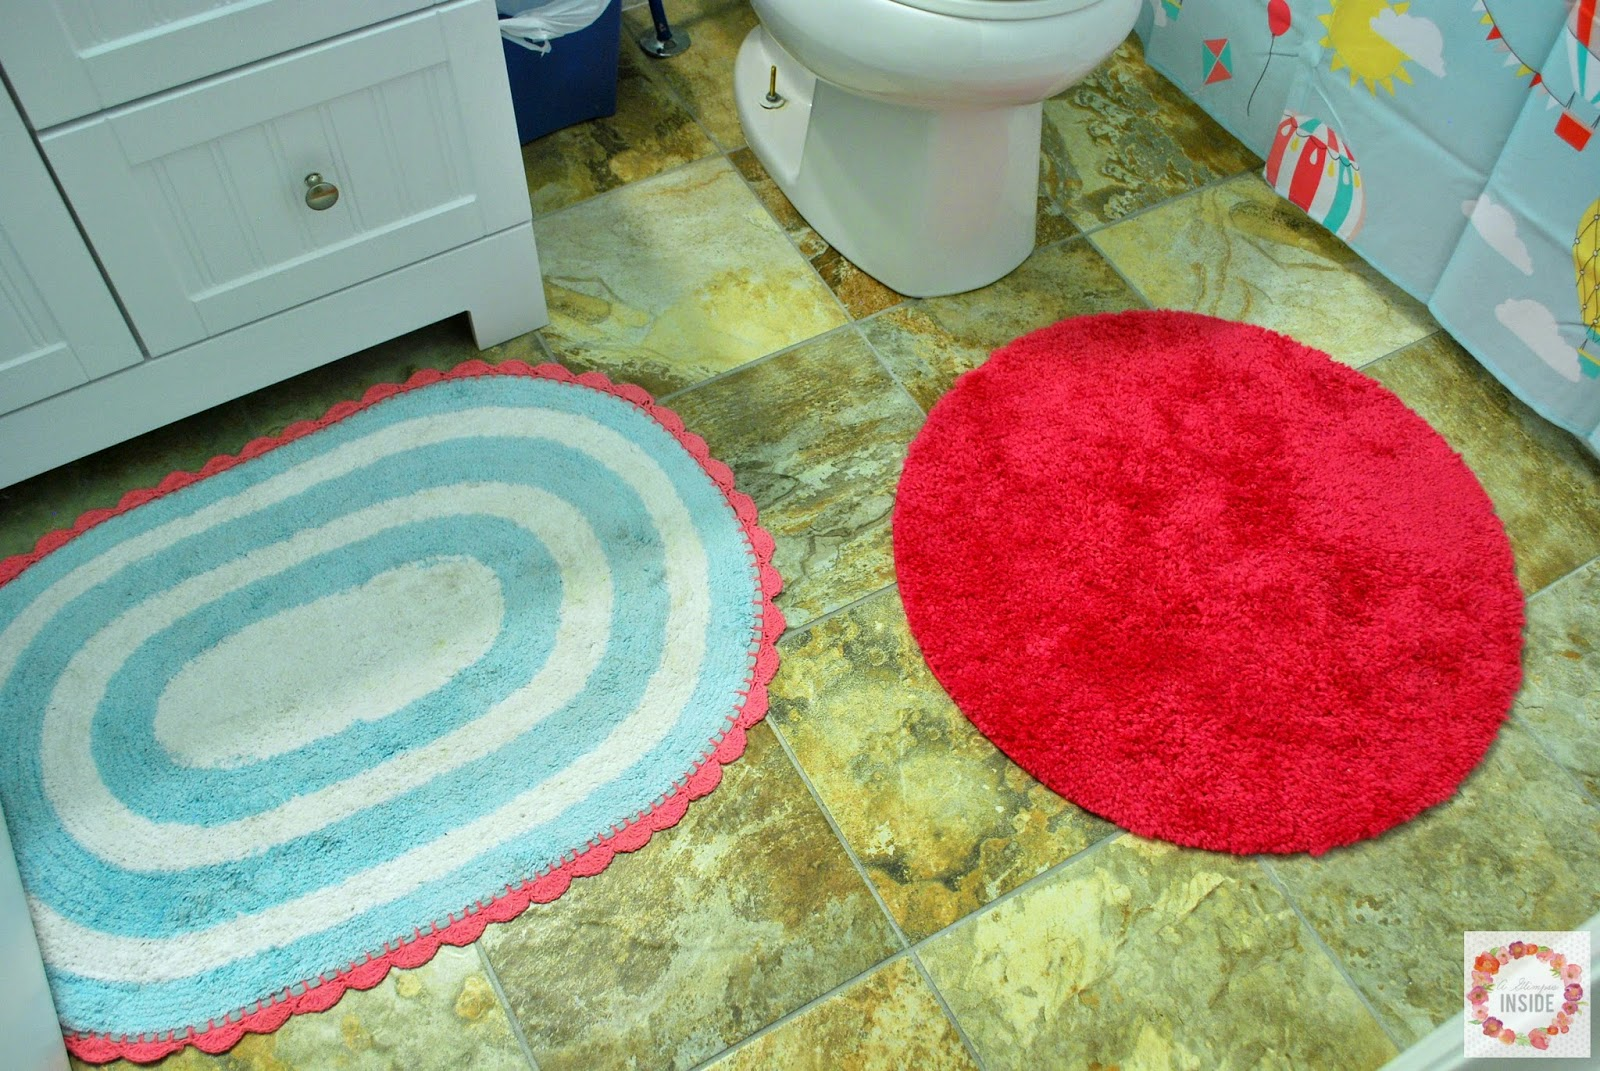 Vintage Here is a shot of our pleted floors and the bathroom rugs